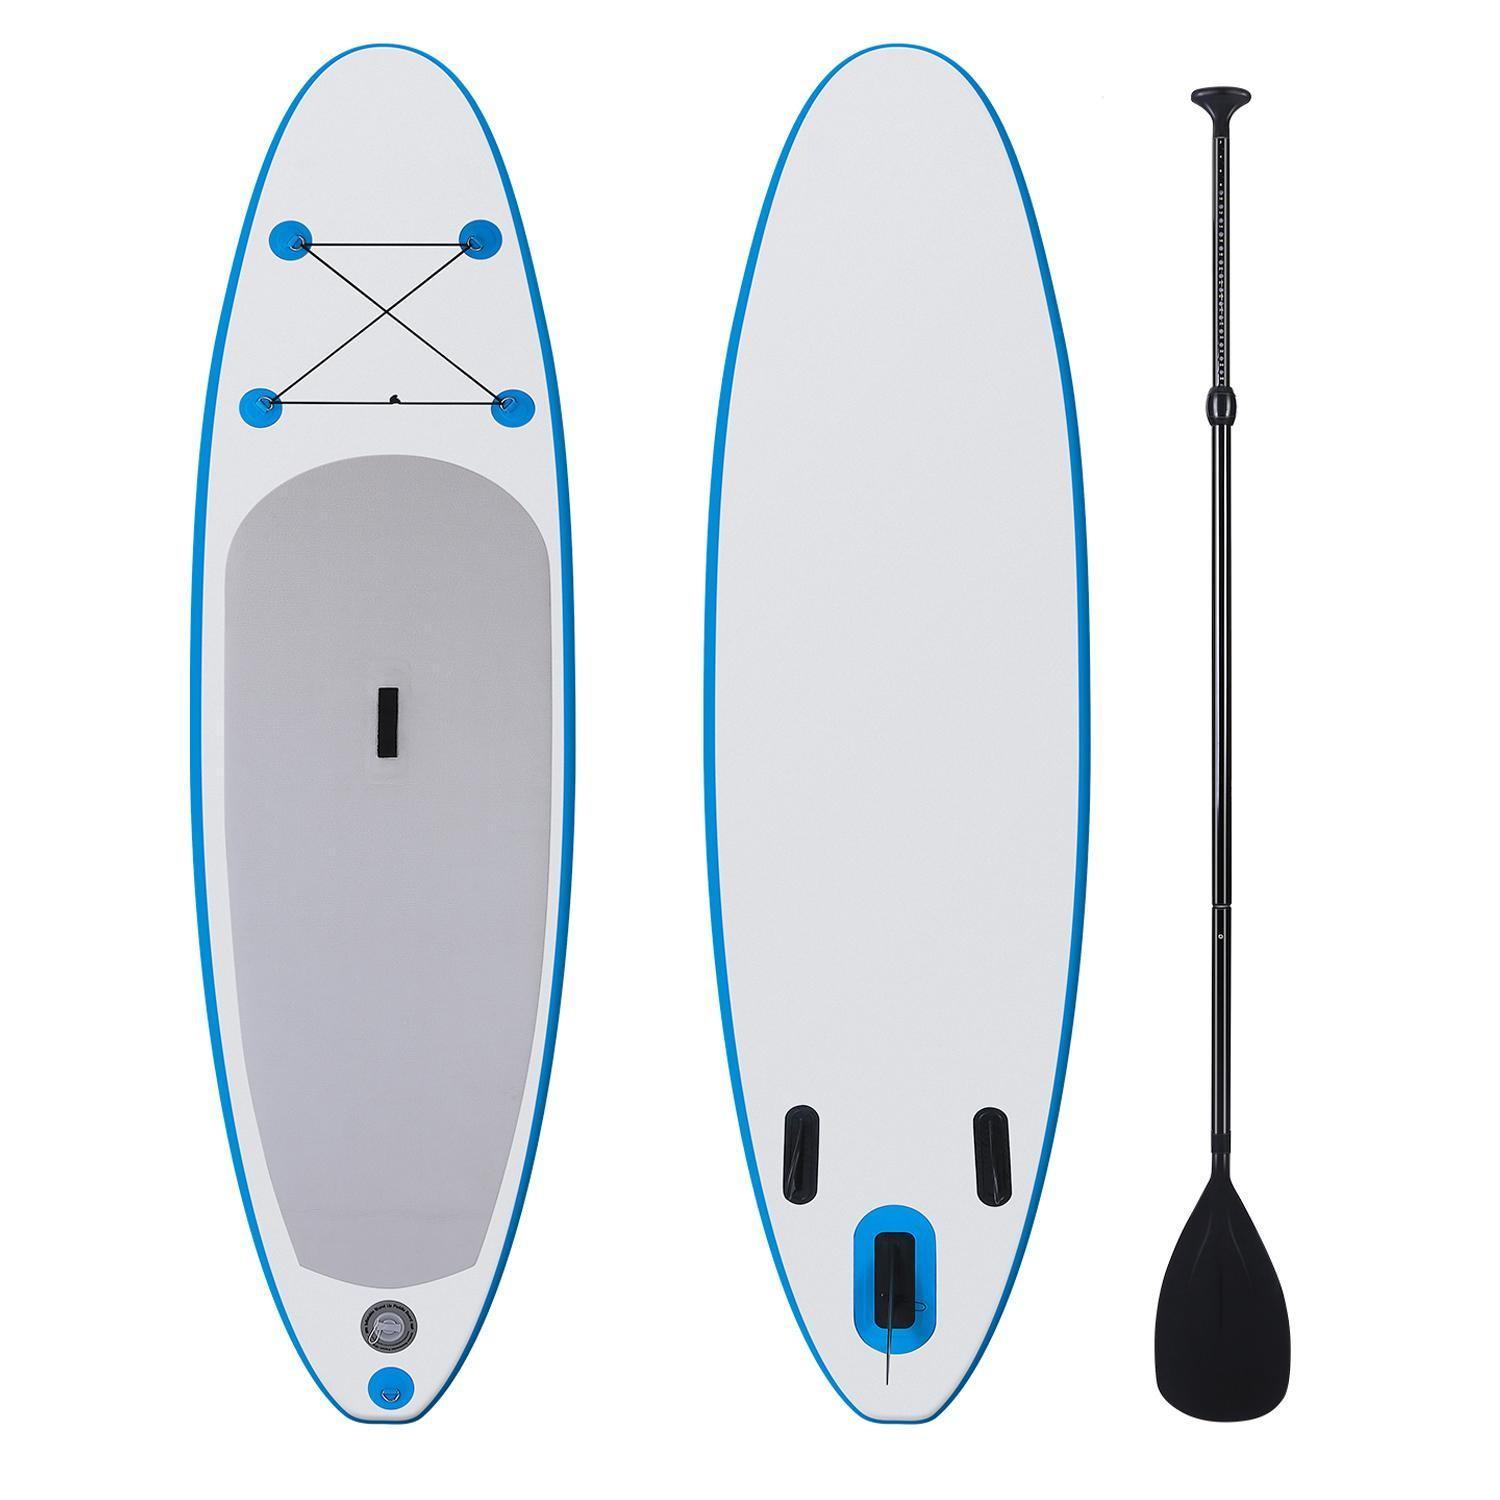 HiFashion Inflatable SUP Stand Up Paddle Board 10', iSUP Board Package with Adjustable Paddle, Pump and Backpack,Blue Sup Inflatable Paddle Boards